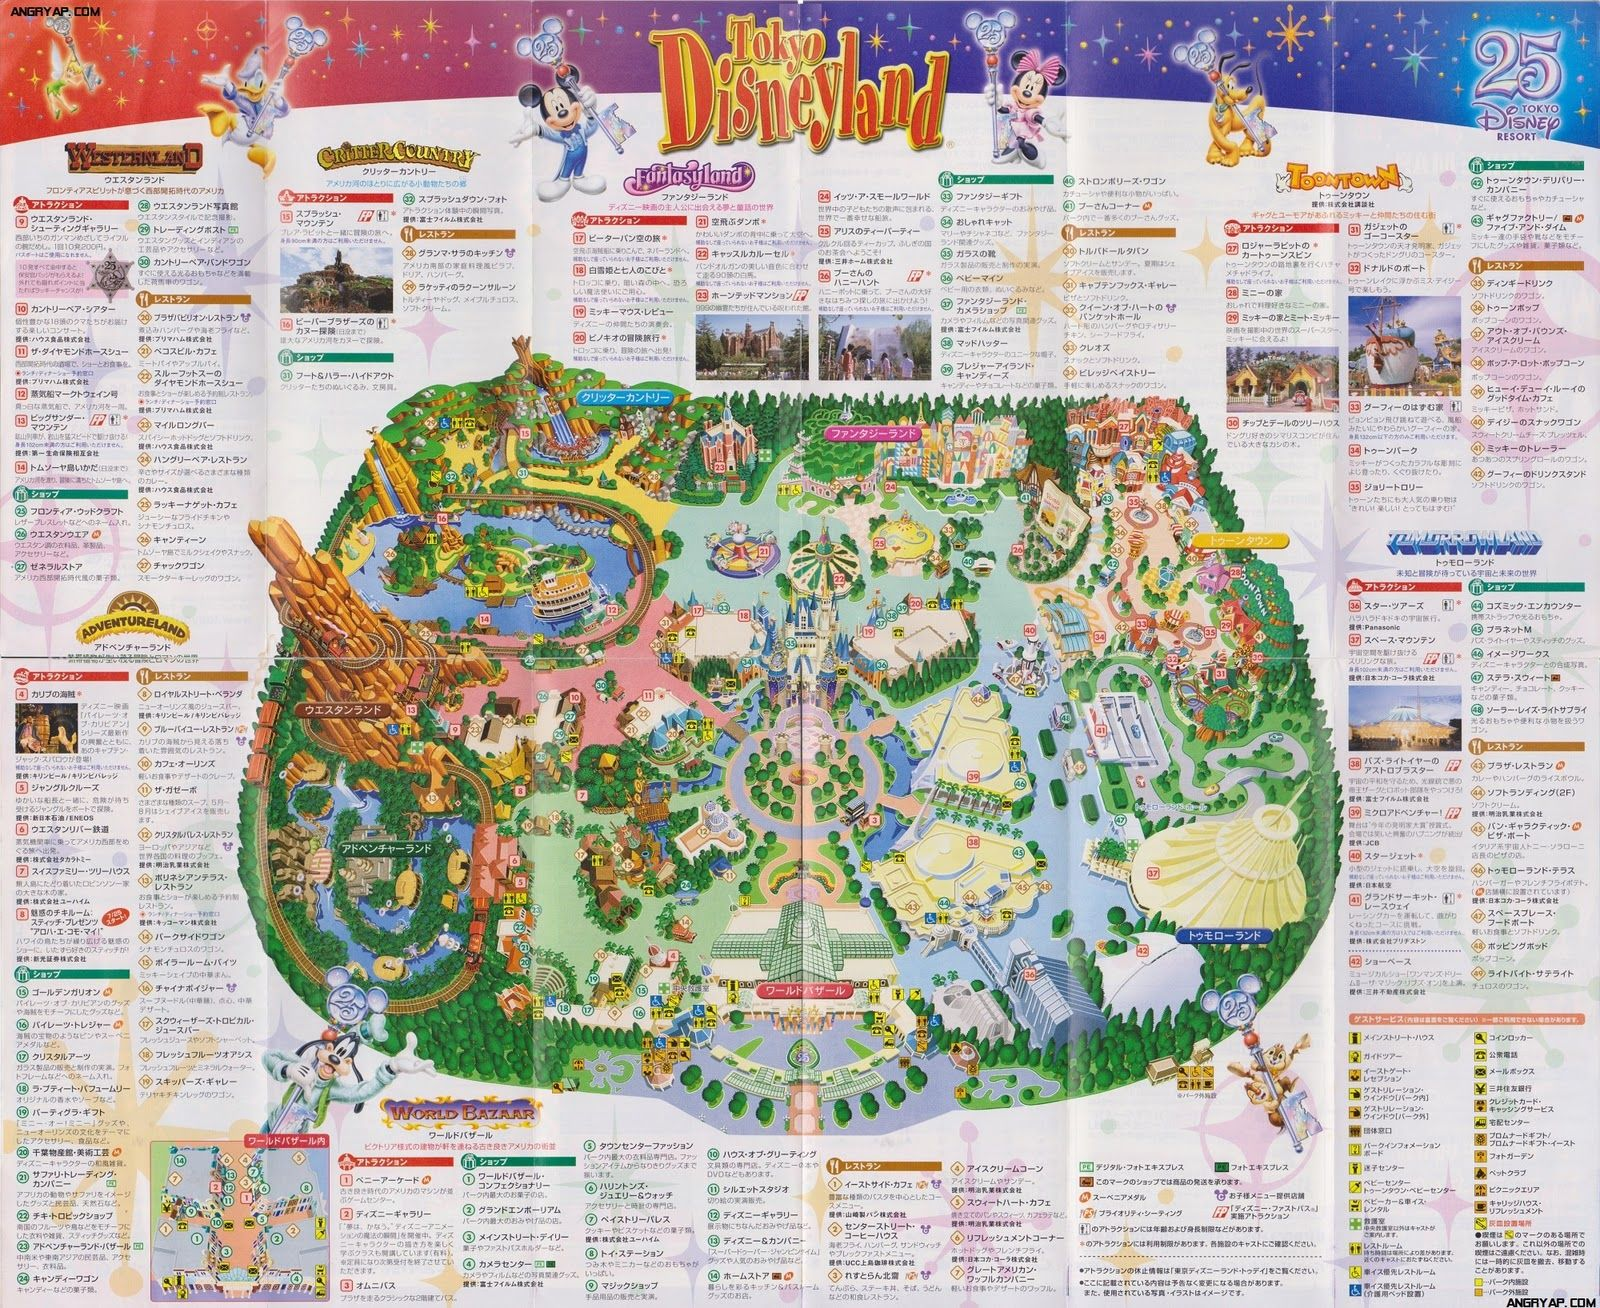 Angry ap disneyland and walt disney world nostalgia tokyo angry ap disneyland and walt disney world nostalgia tokyo disneyland guide map from 2008 publicscrutiny Images